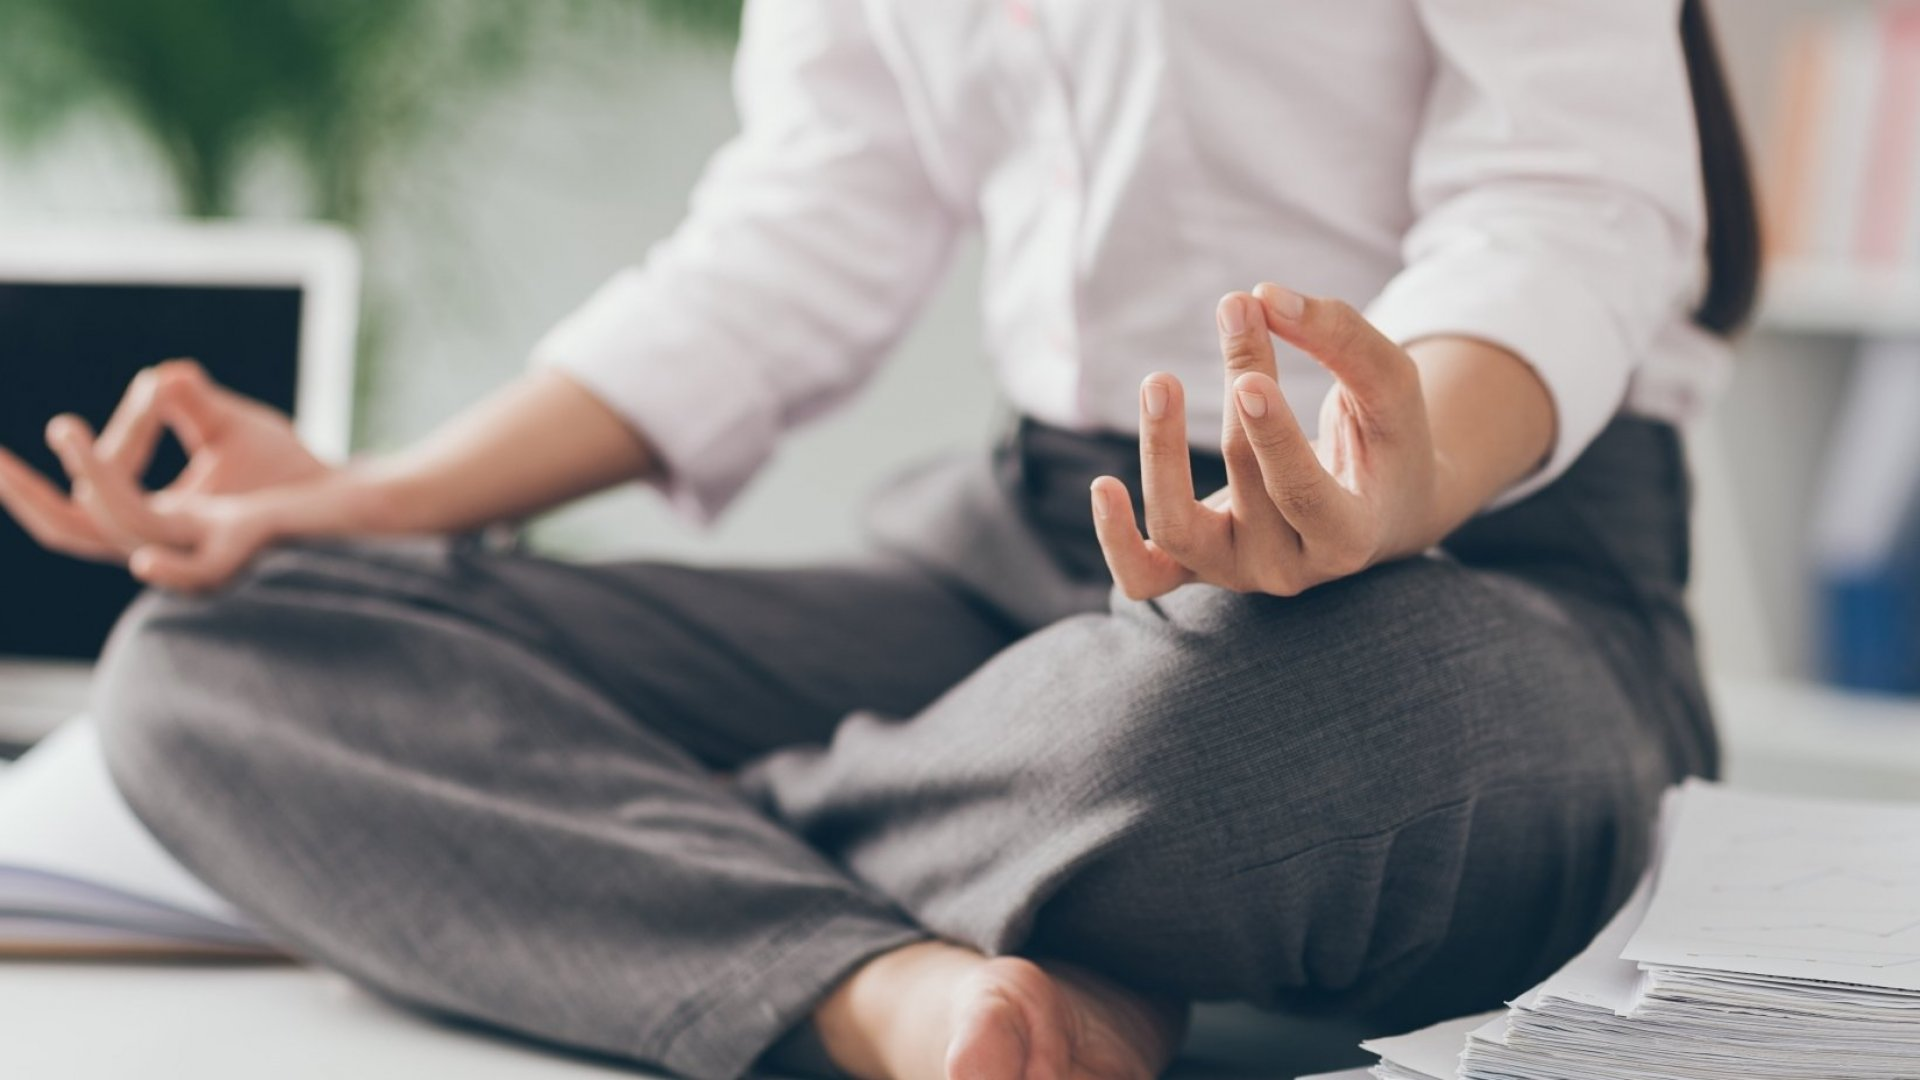 7 Myths About Meditation Preventing You From Grasping The Amazing Benefits of Mindfulness